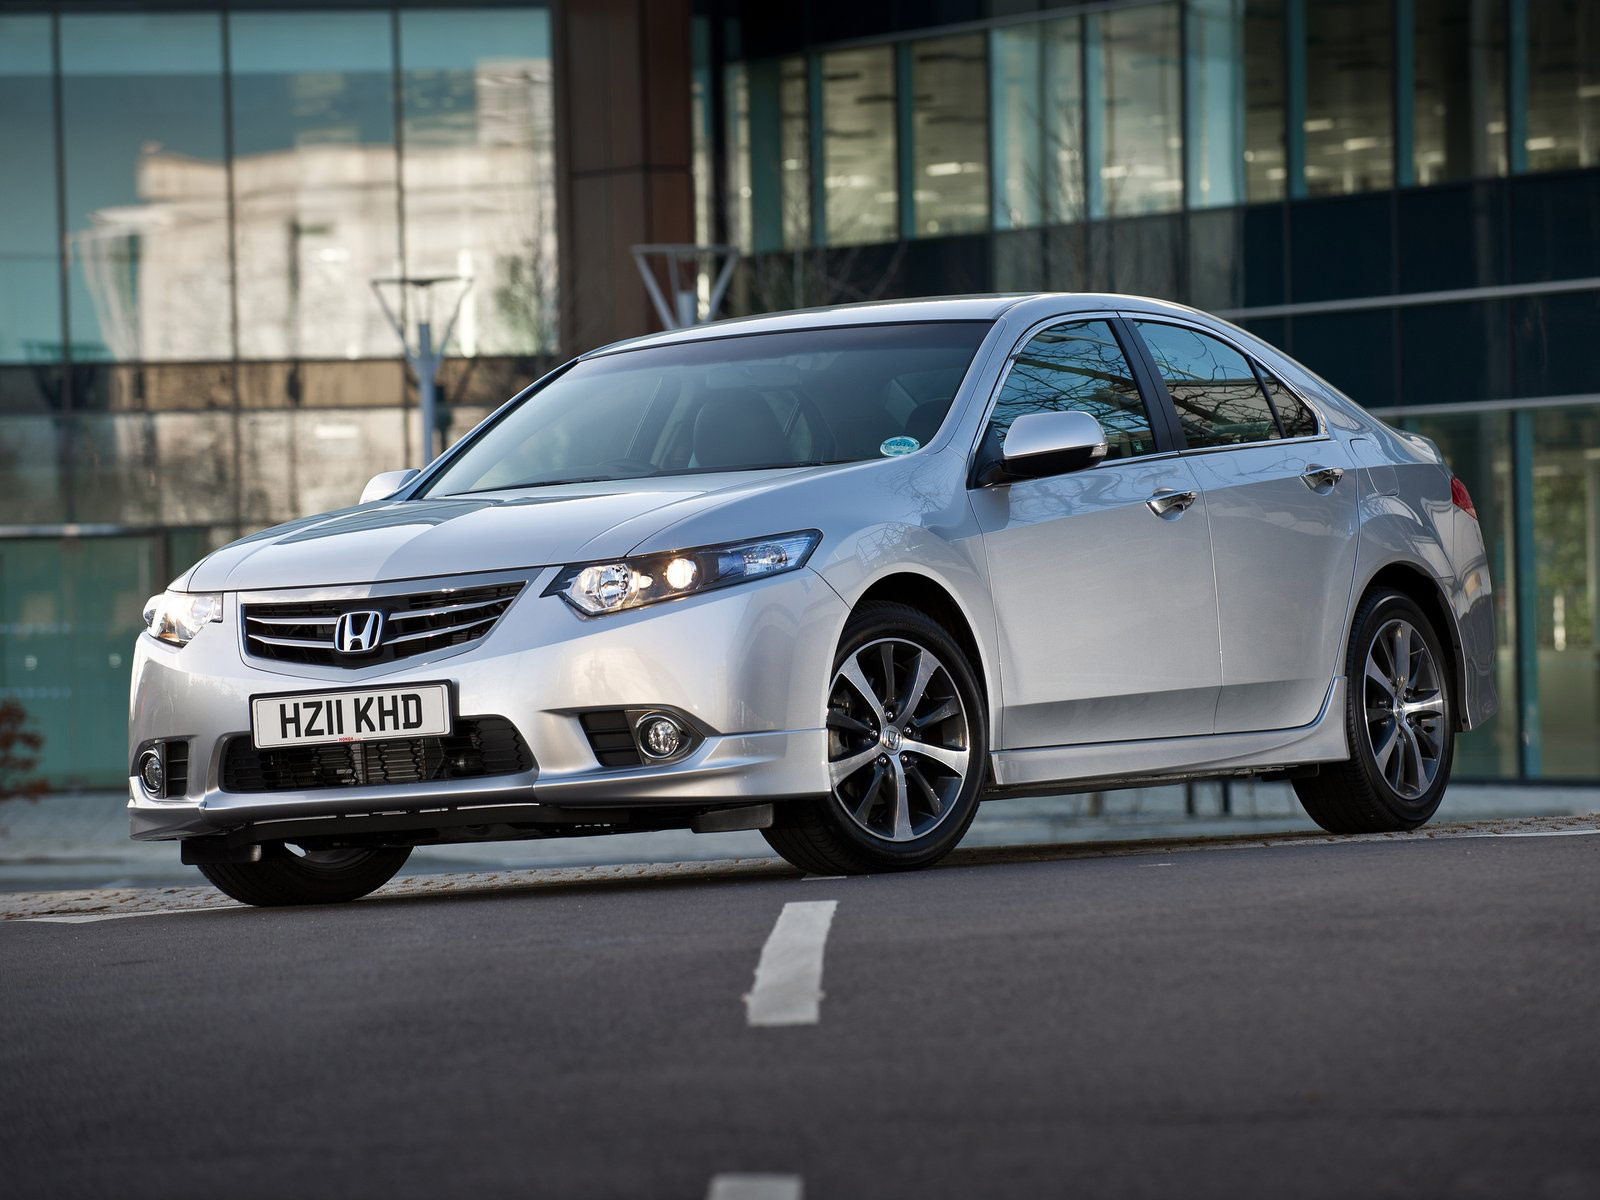 2011 Honda Accord Eu Version Car News